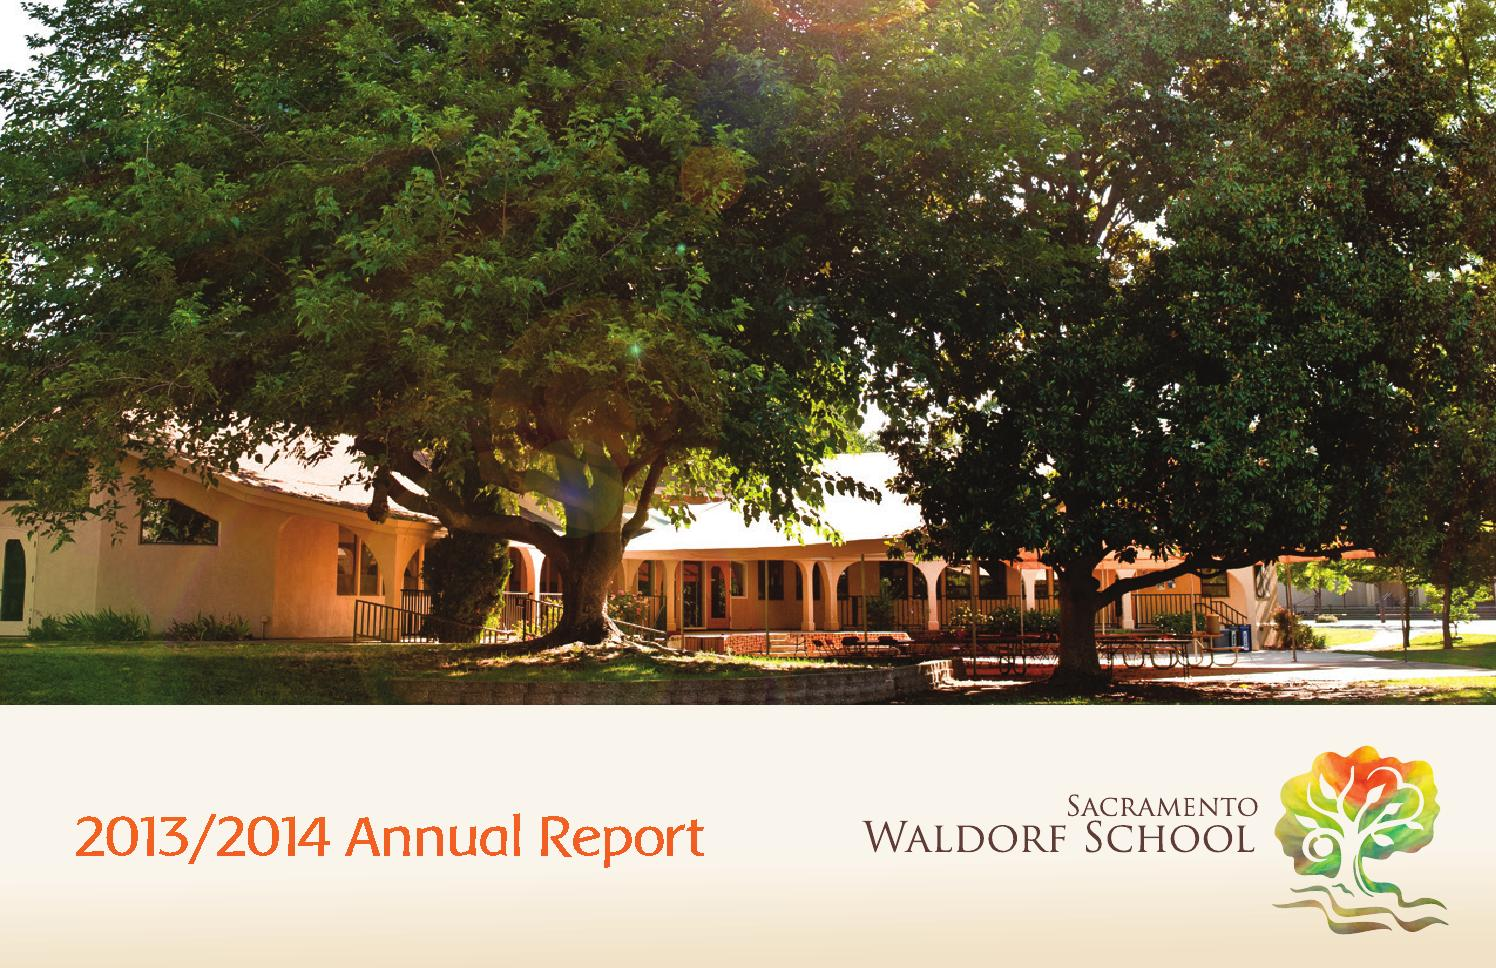 SWS 2013/2014 Annual Report by Sacramento Waldorf School - issuu